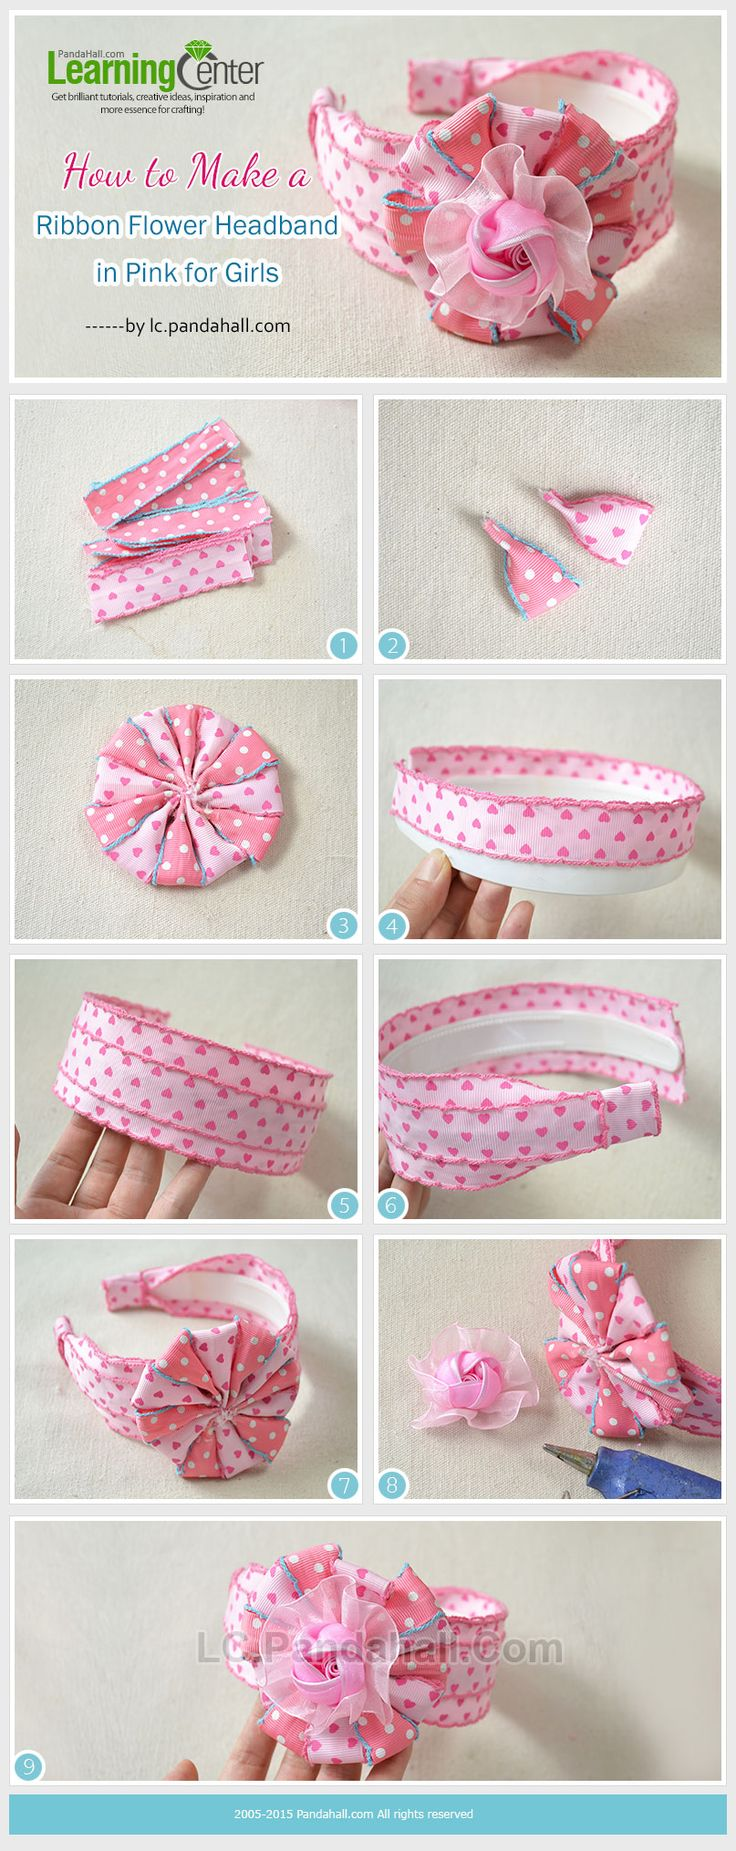 Tutorial on How to Make a Ribbon Flower Headband in Pink for Girls from LC.Pandahall.com